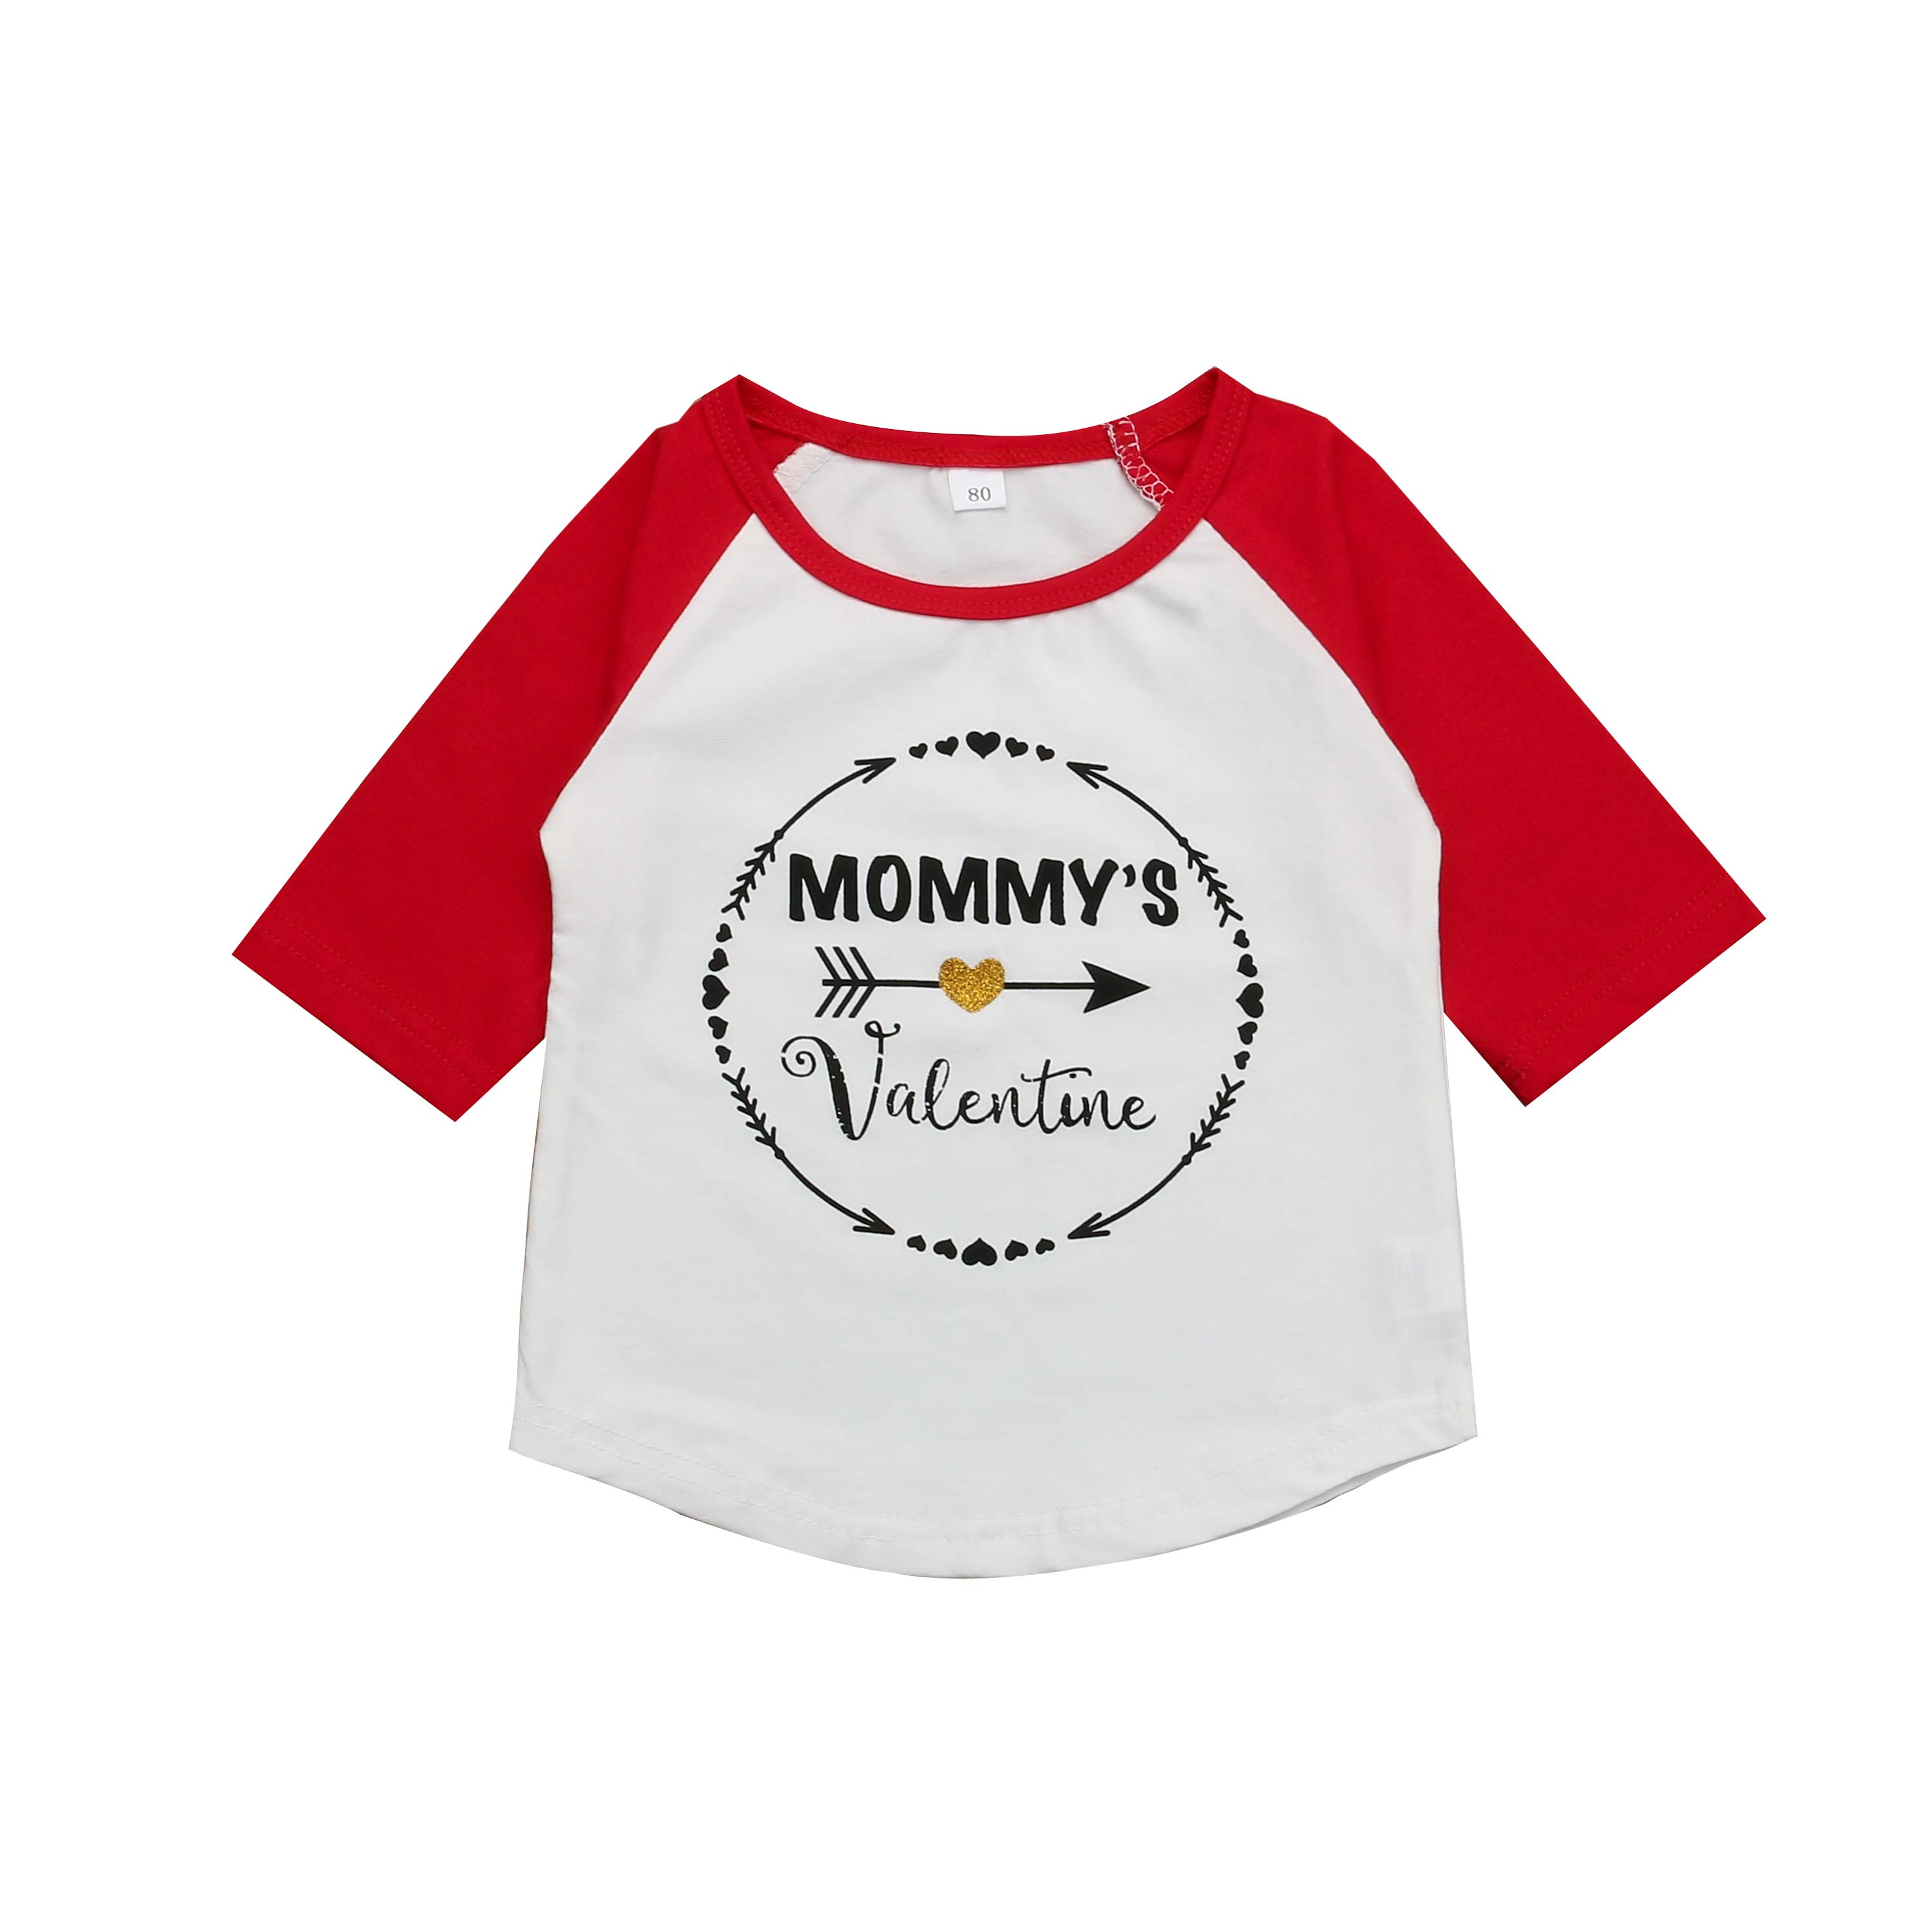 a58f49d0b 2019 Spring Valentine's Day Toddler Baby Girls Tops T-shirt Long Sleeve  Blouse Kids Casual Clothes Autumn Casual Outfit